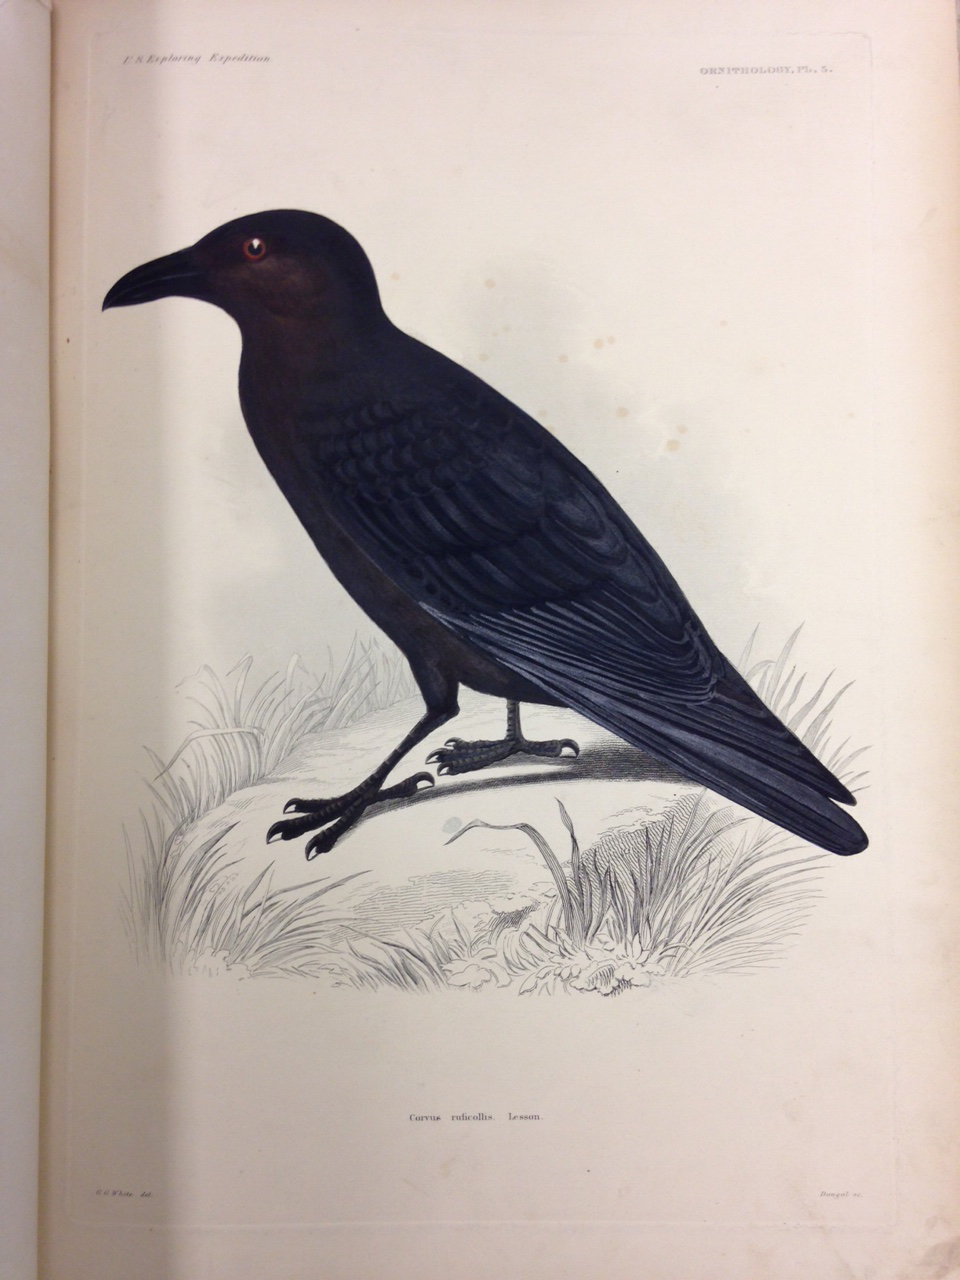 Ornithology, Plate 5: Corvus ruficollis (Brown-necked raven). – The blacks used on the feathers reflect light when viewing the plate from different angles. This is a wonderful example of how important it can be to see a real item in person for the full experience.